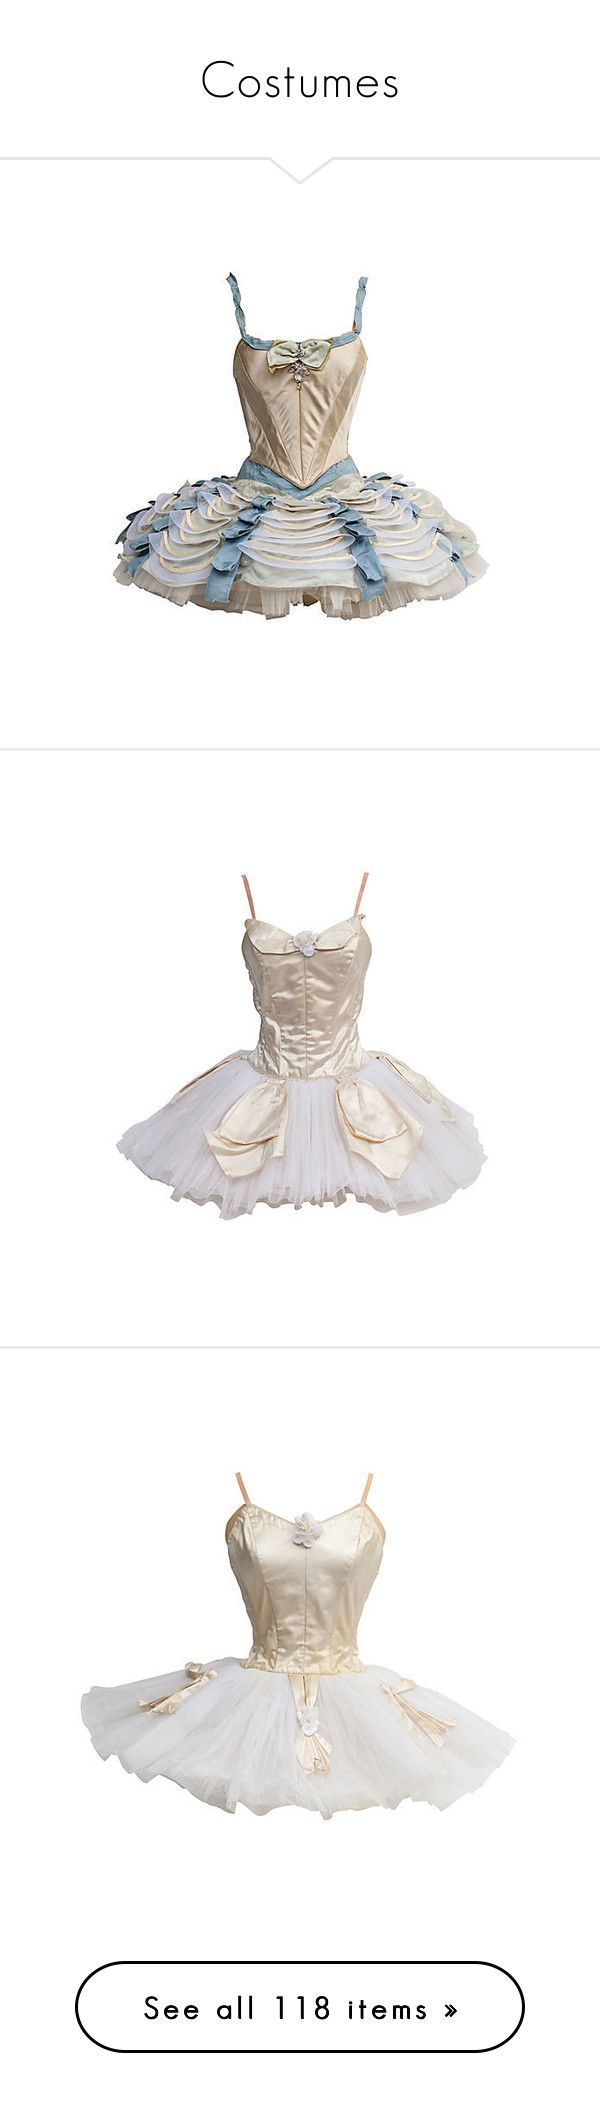 """""""Costumes"""" by jesuisunlapin ❤ liked on Polyvore featuring costumes, dresses, ballet, dance, robe, costume, ballerina costume, ballerina halloween costume, ballet halloween costume and ballet costumes"""